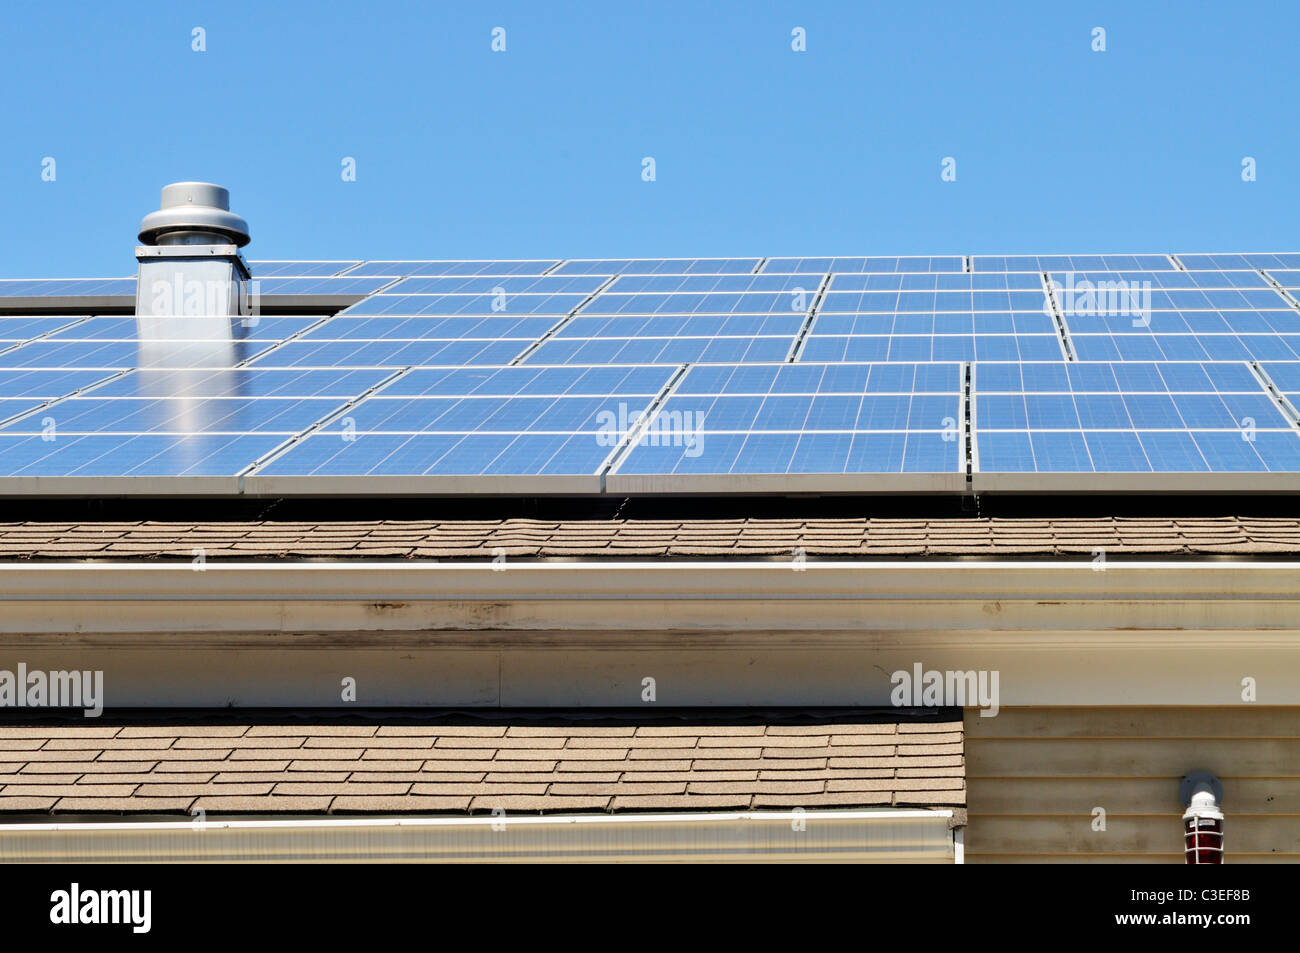 Solar panels on roof of building on a sunny blue sky day - Stock Image